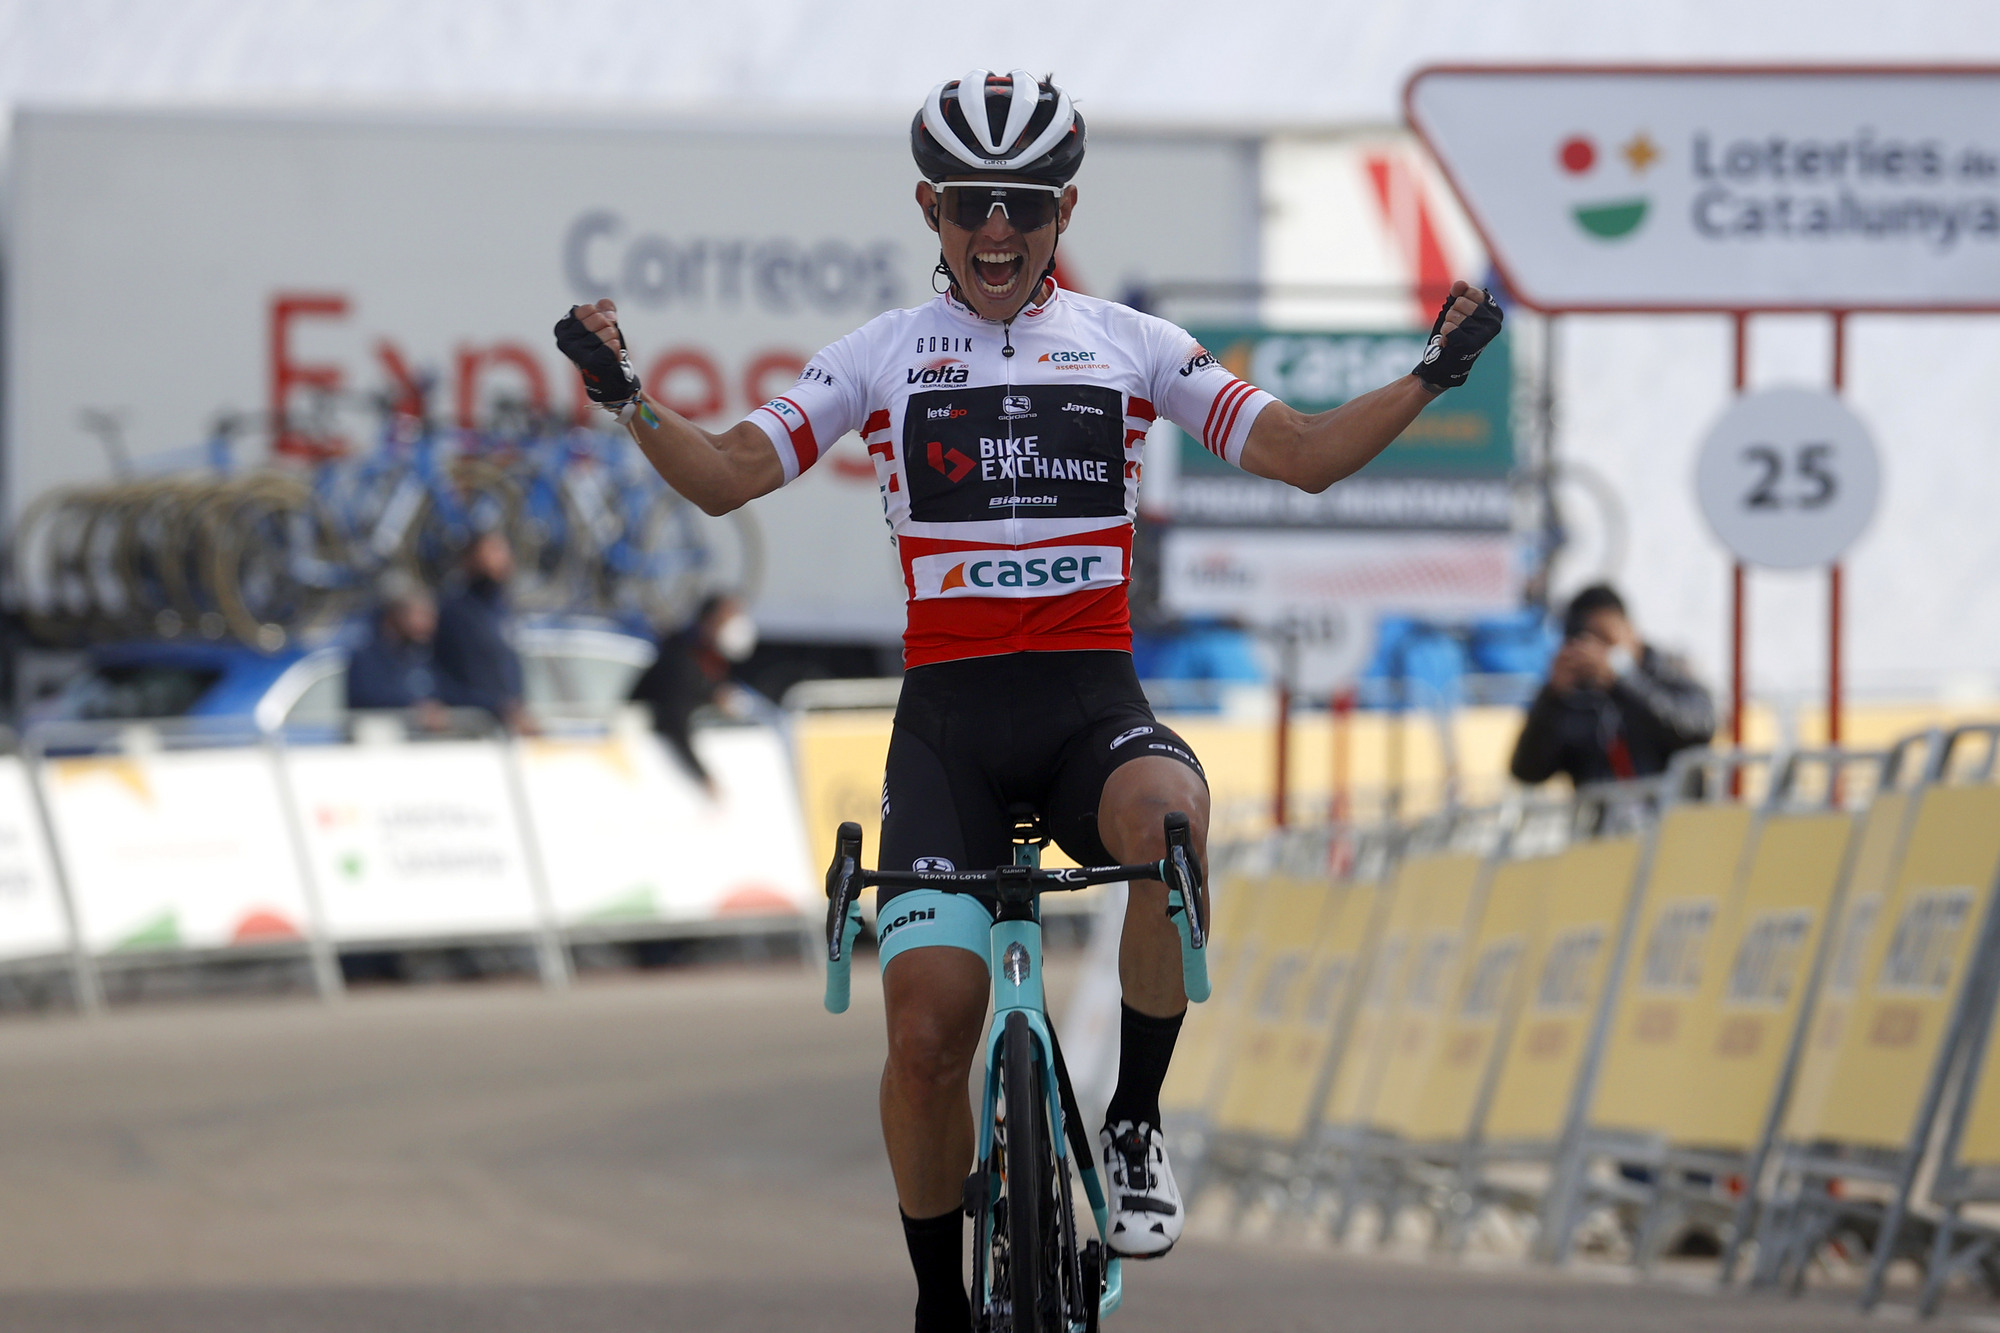 Esteban Chaves celebrates his victory at the Volta a Catalunya